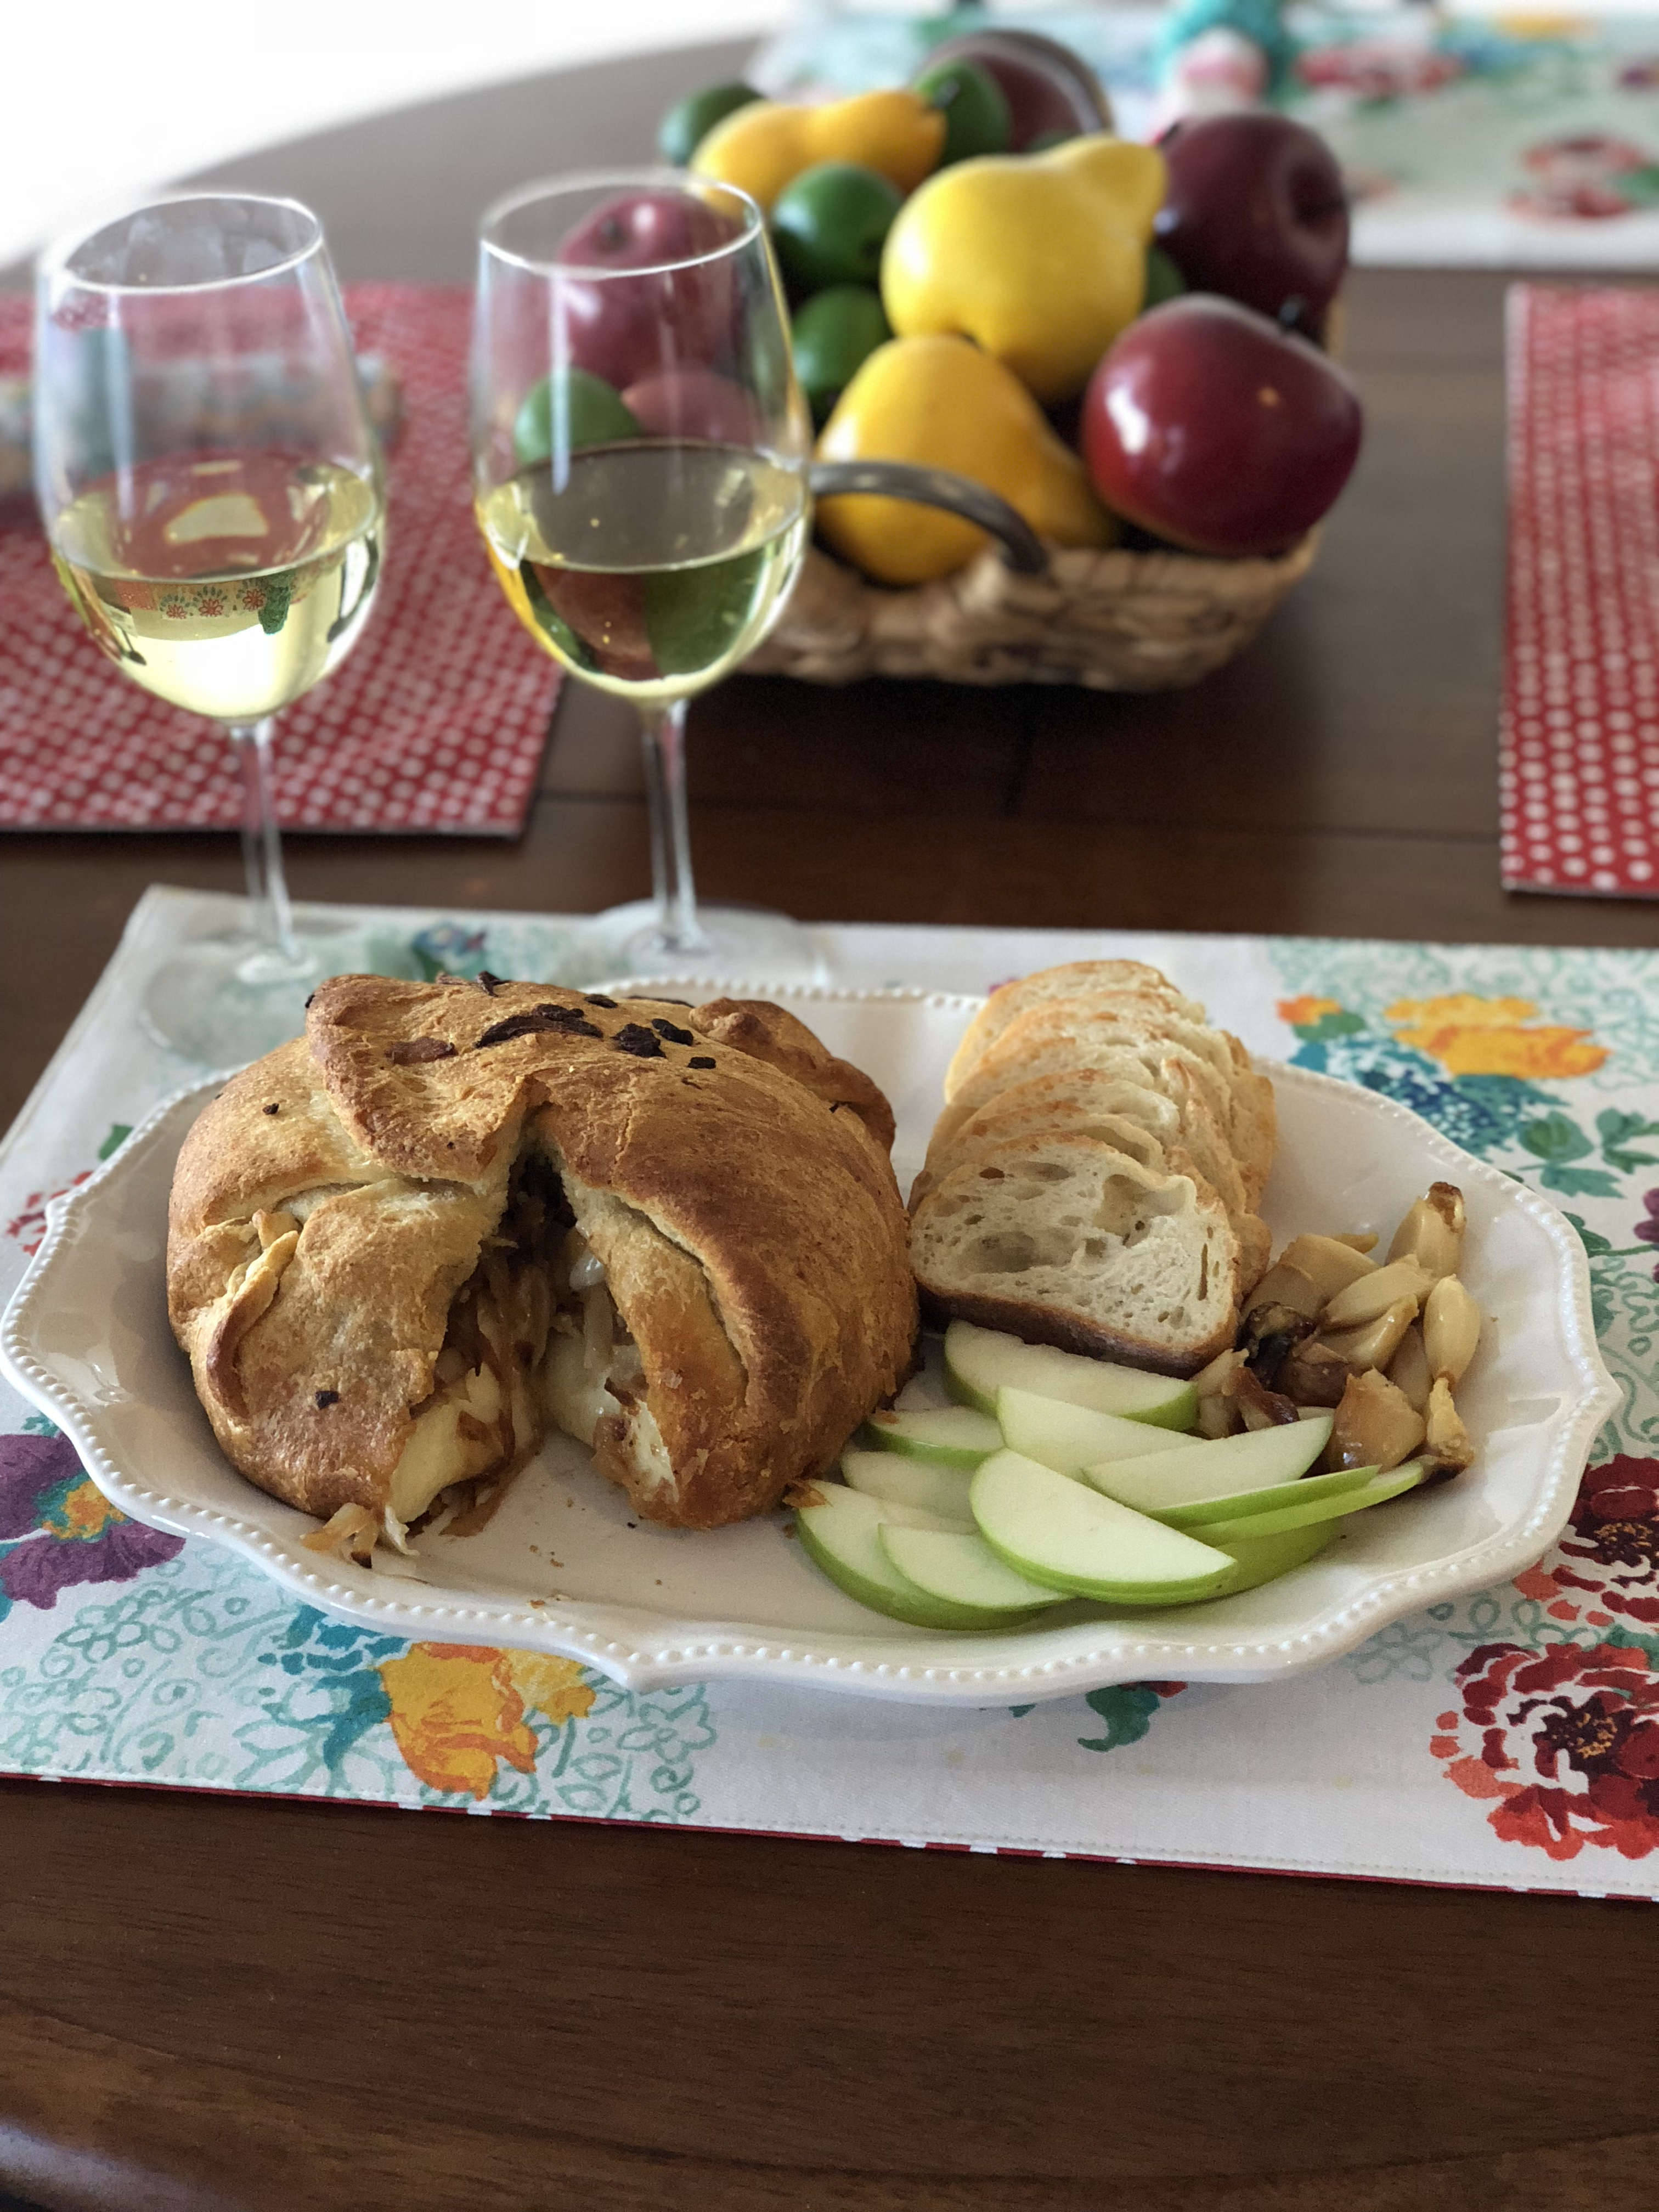 Baked Brie with Caramelized Onions KnJ